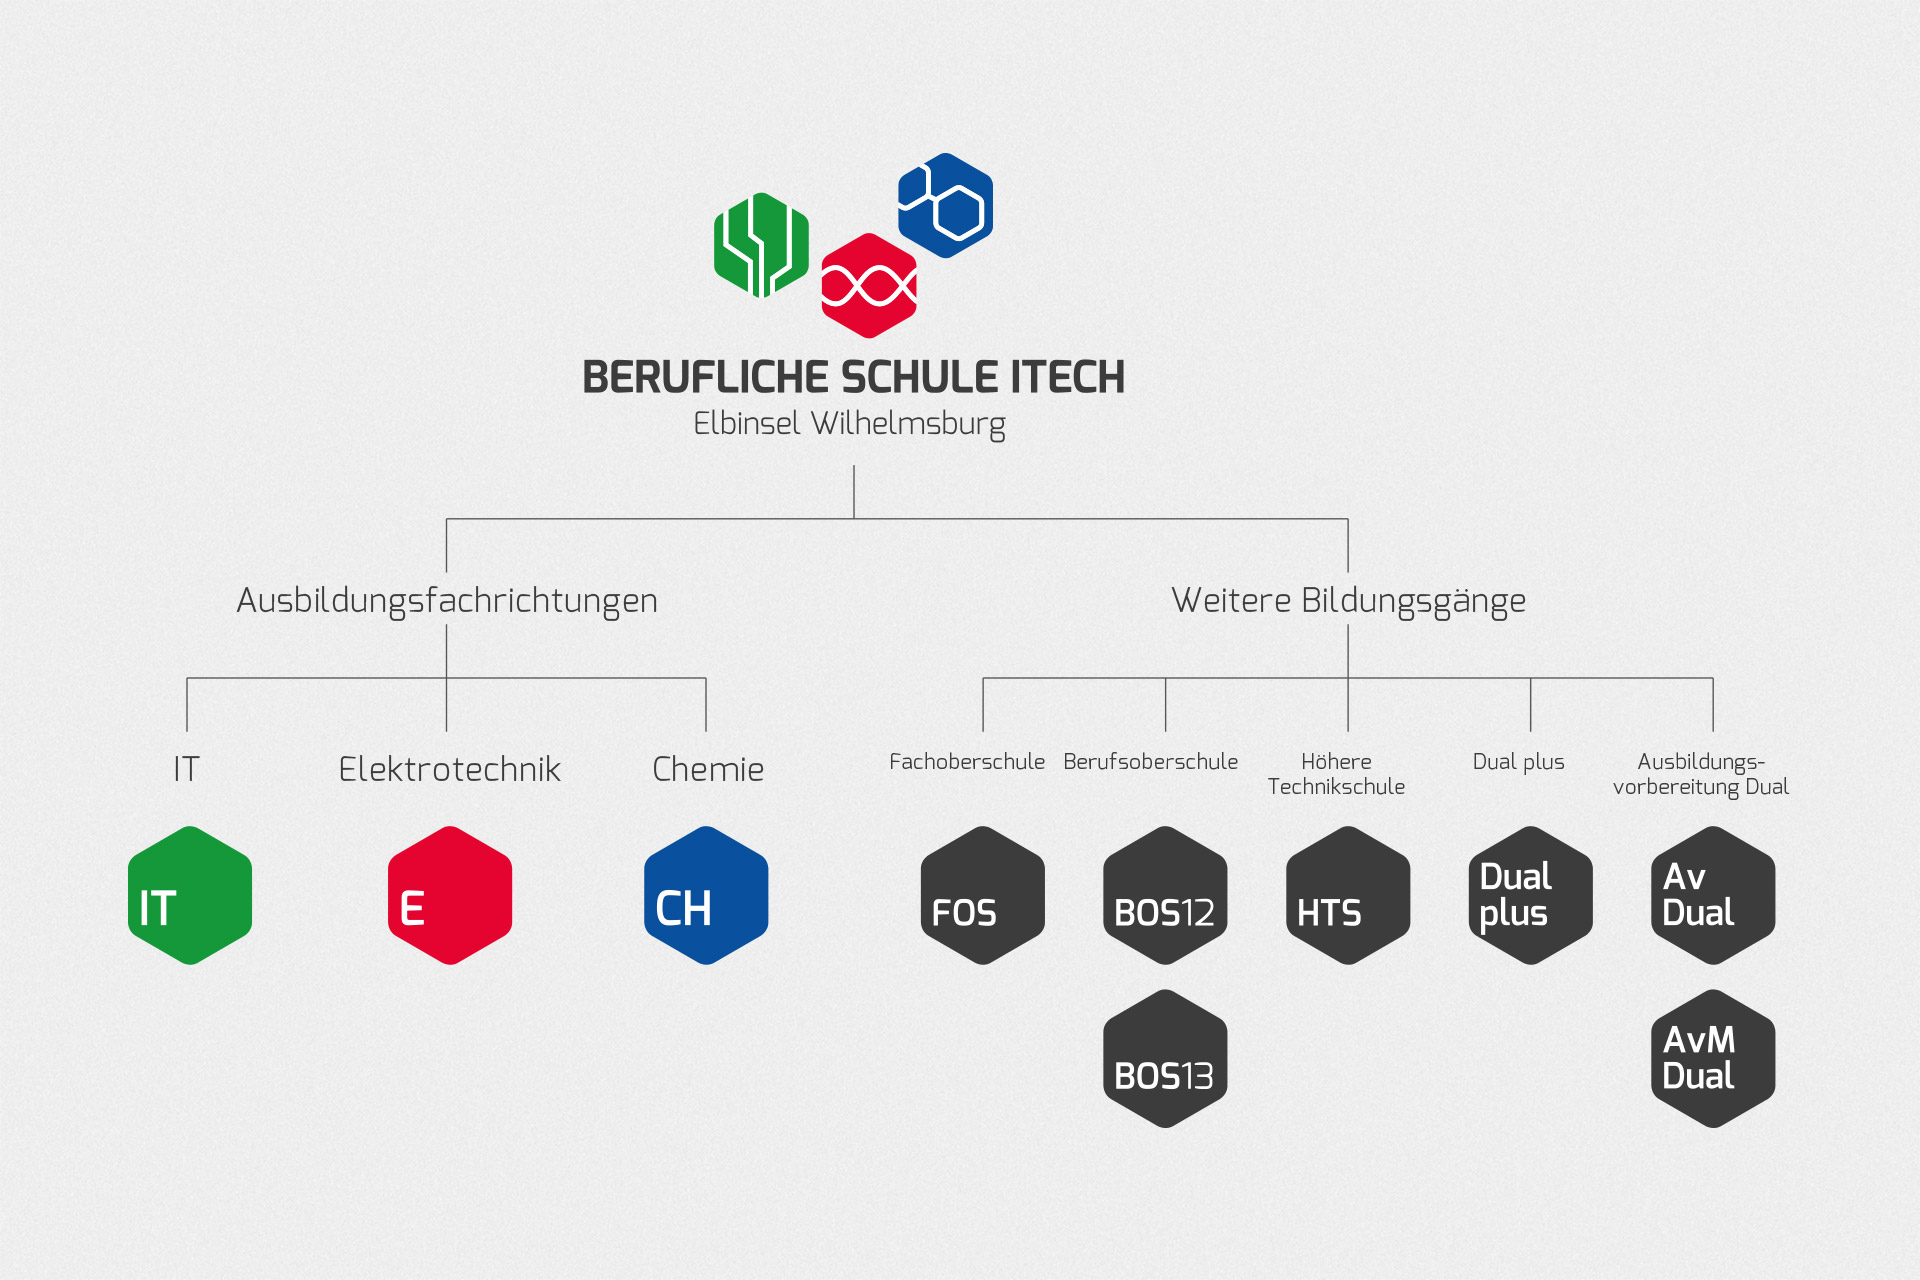 bs-itech markenarchitektur